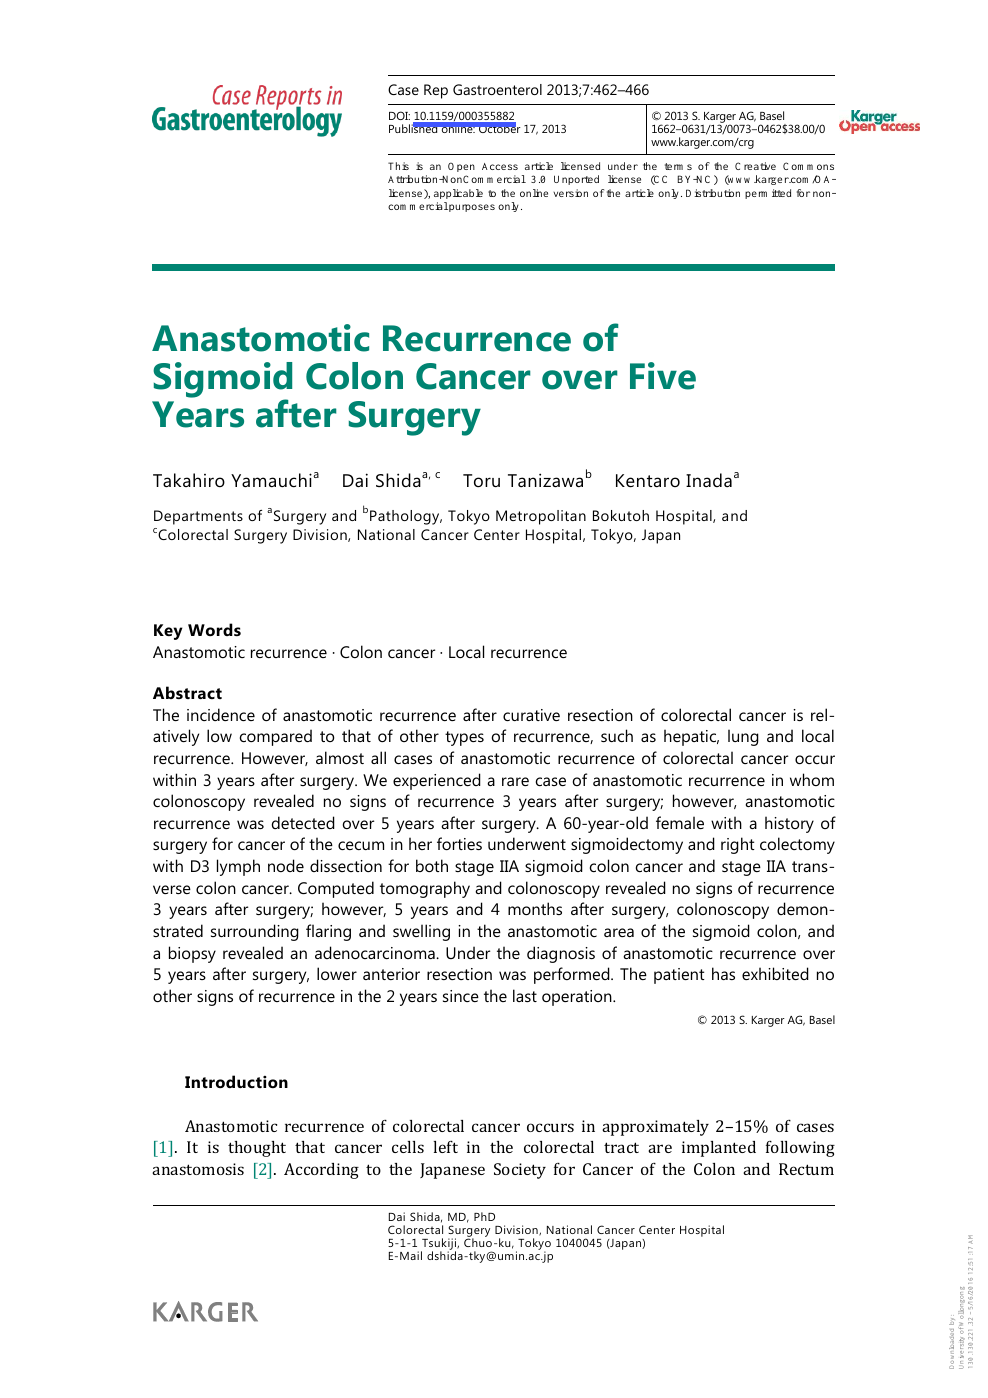 Anastomotic Recurrence Of Sigmoid Colon Cancer Over Five Years After Surgery Topic Of Research Paper In Clinical Medicine Download Scholarly Article Pdf And Read For Free On Cyberleninka Open Science Hub